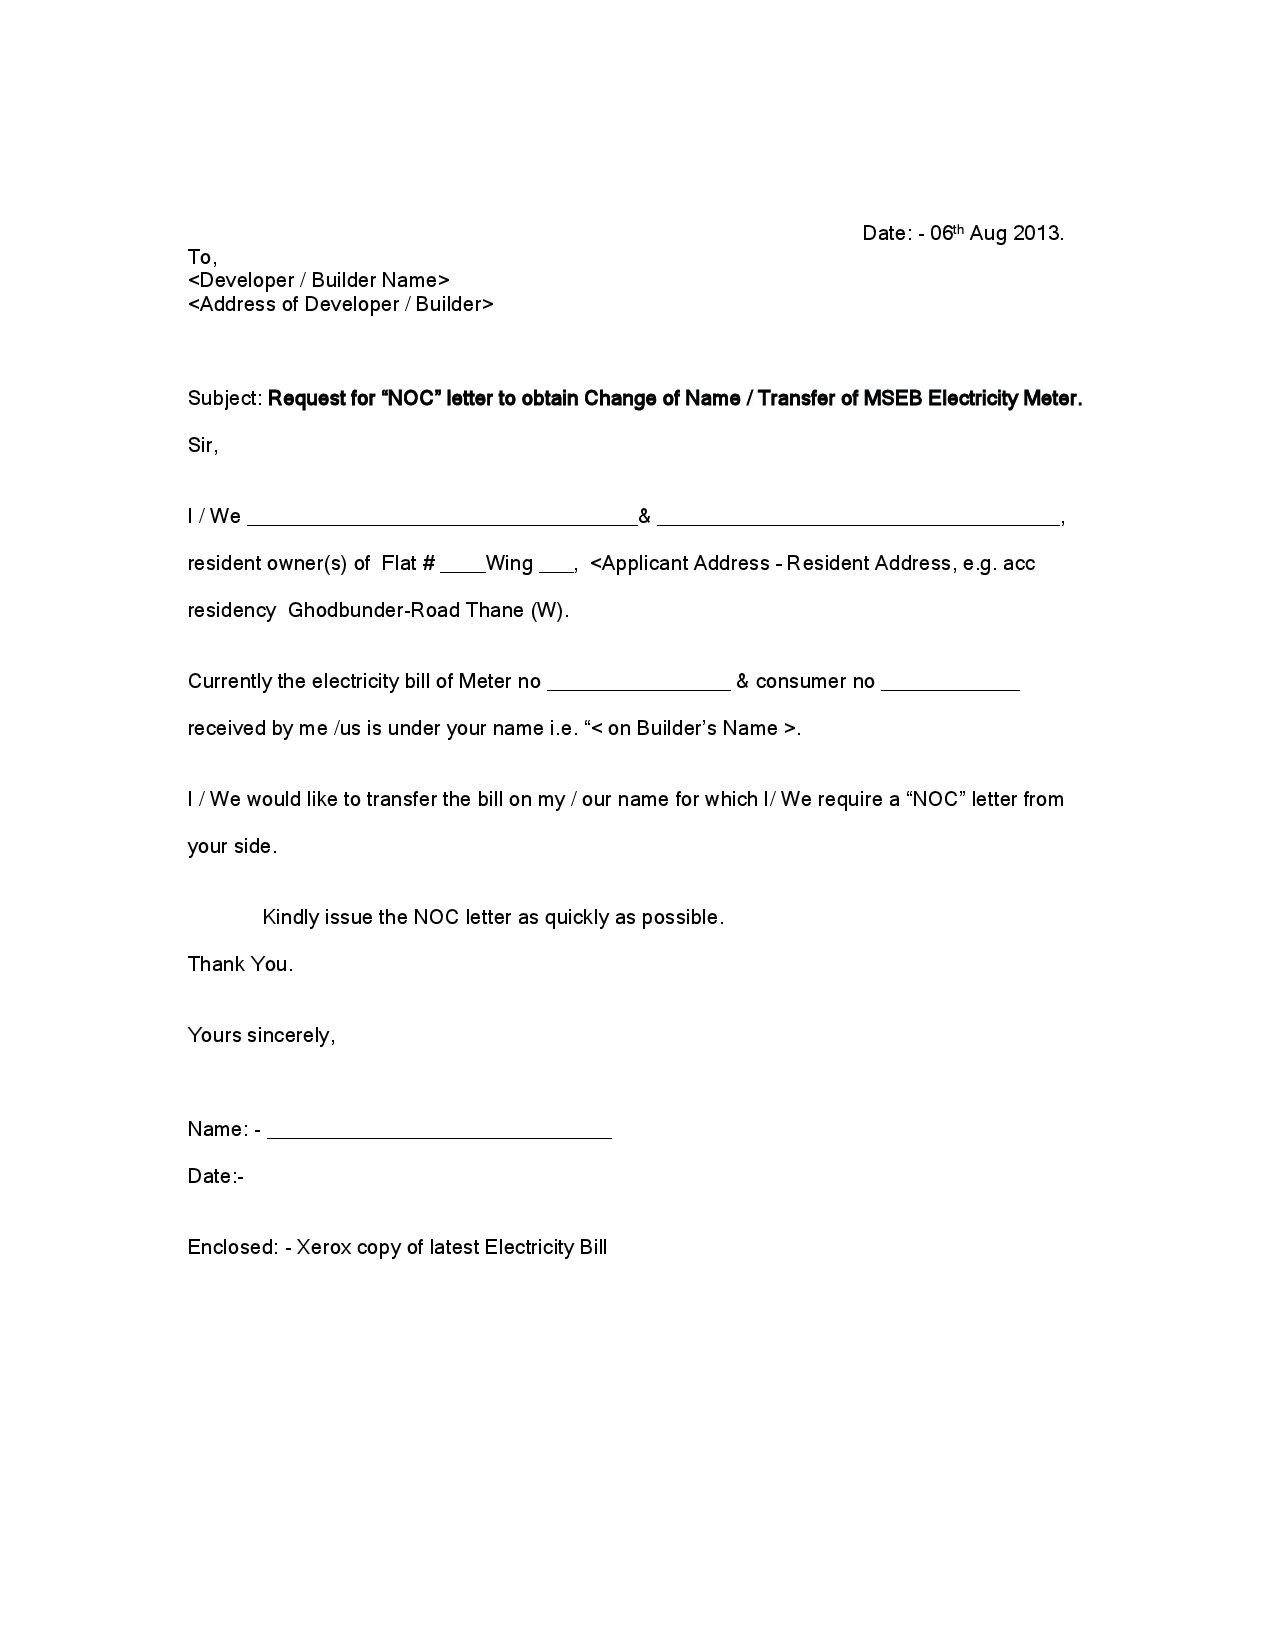 7f3af134d866a5176507f1f52867f1c6 Objection Letter Template on template 1028a, county annexation,